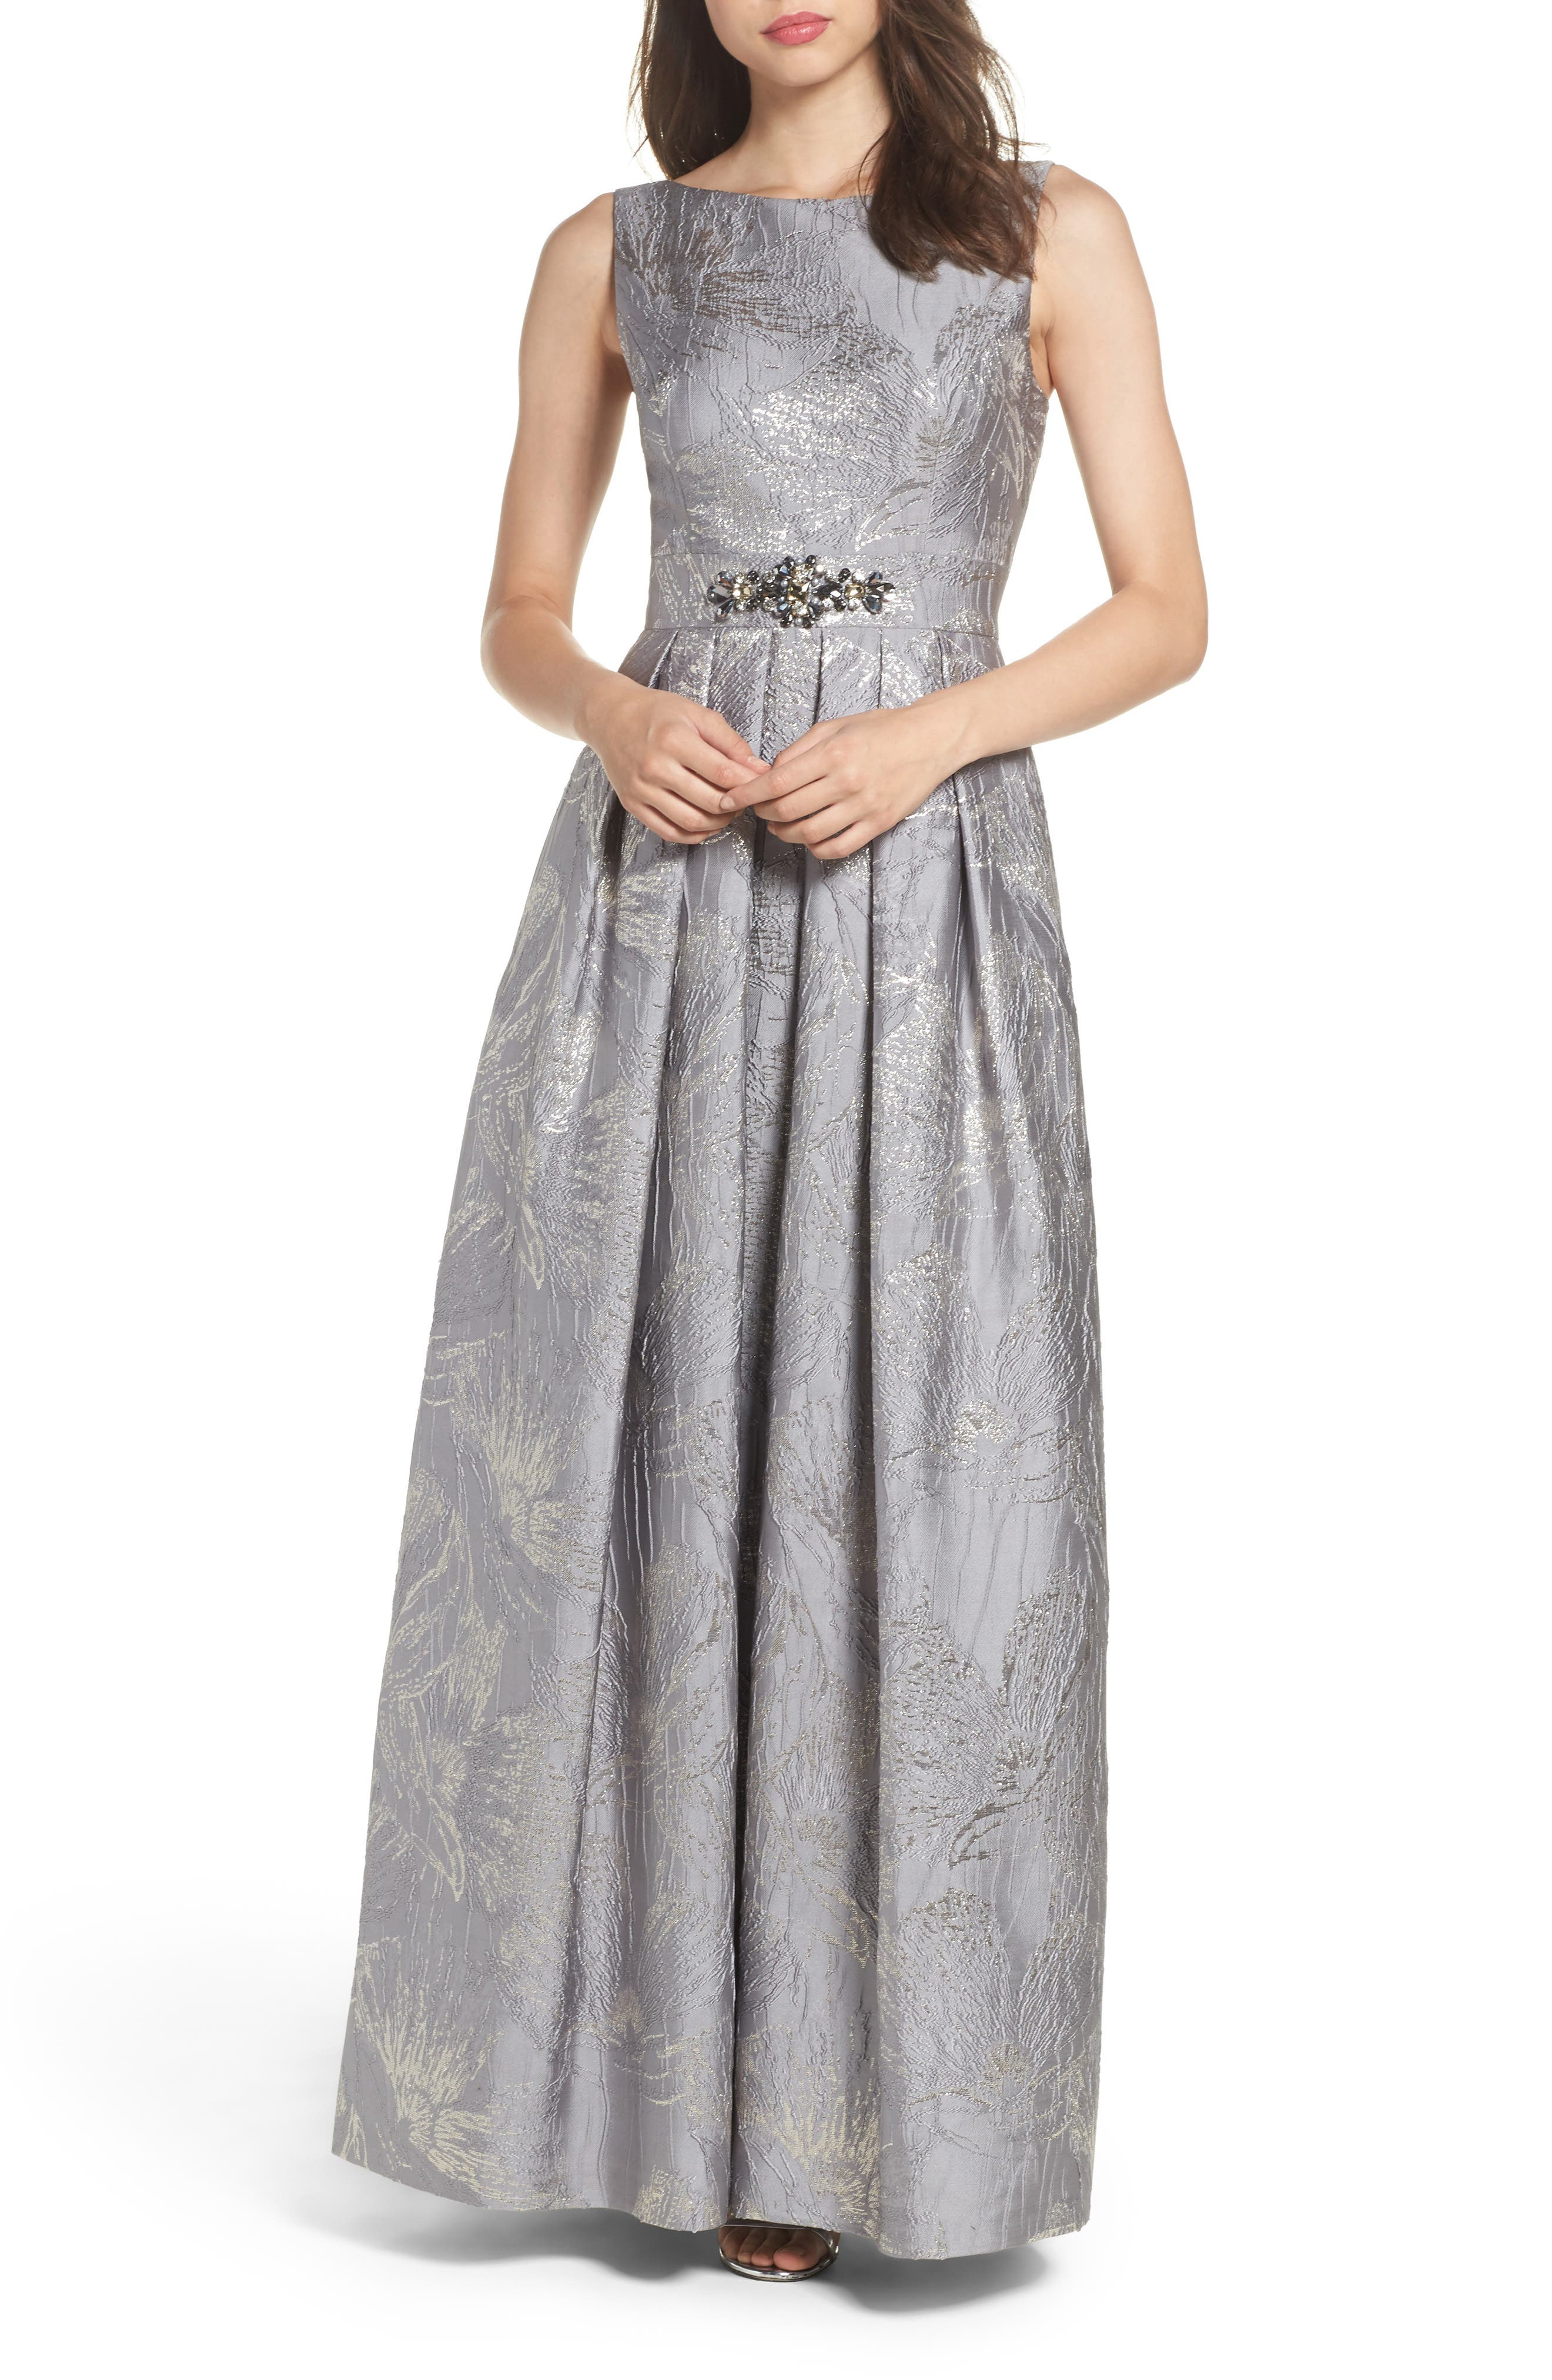 Embellished Brocade Ballgown,                             Main thumbnail 1, color,                             Silver